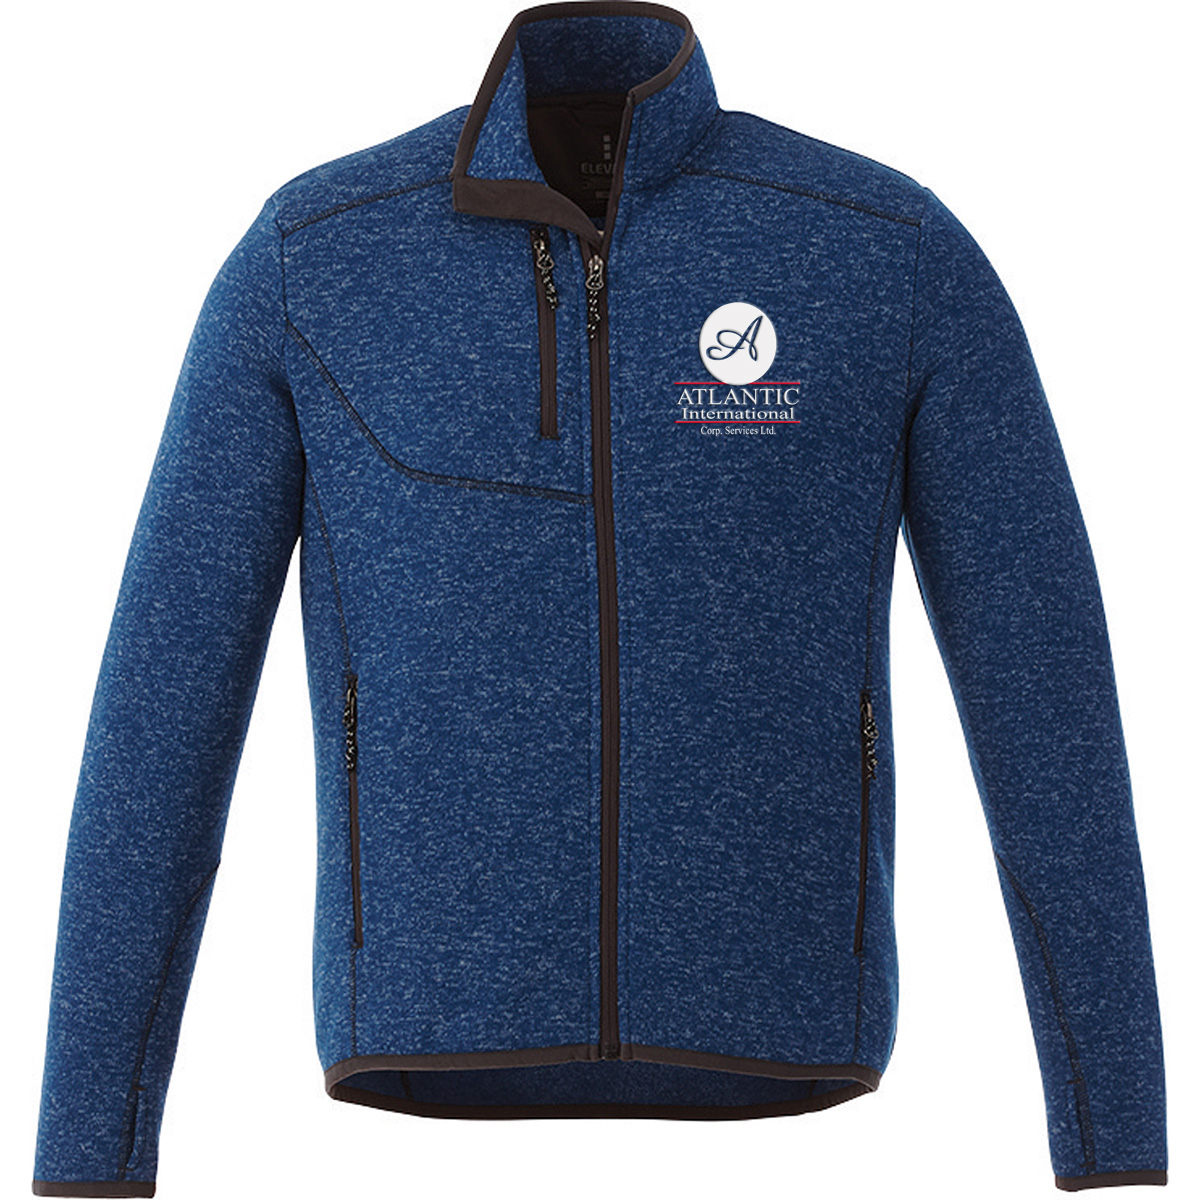 TREMBLANT JACKET